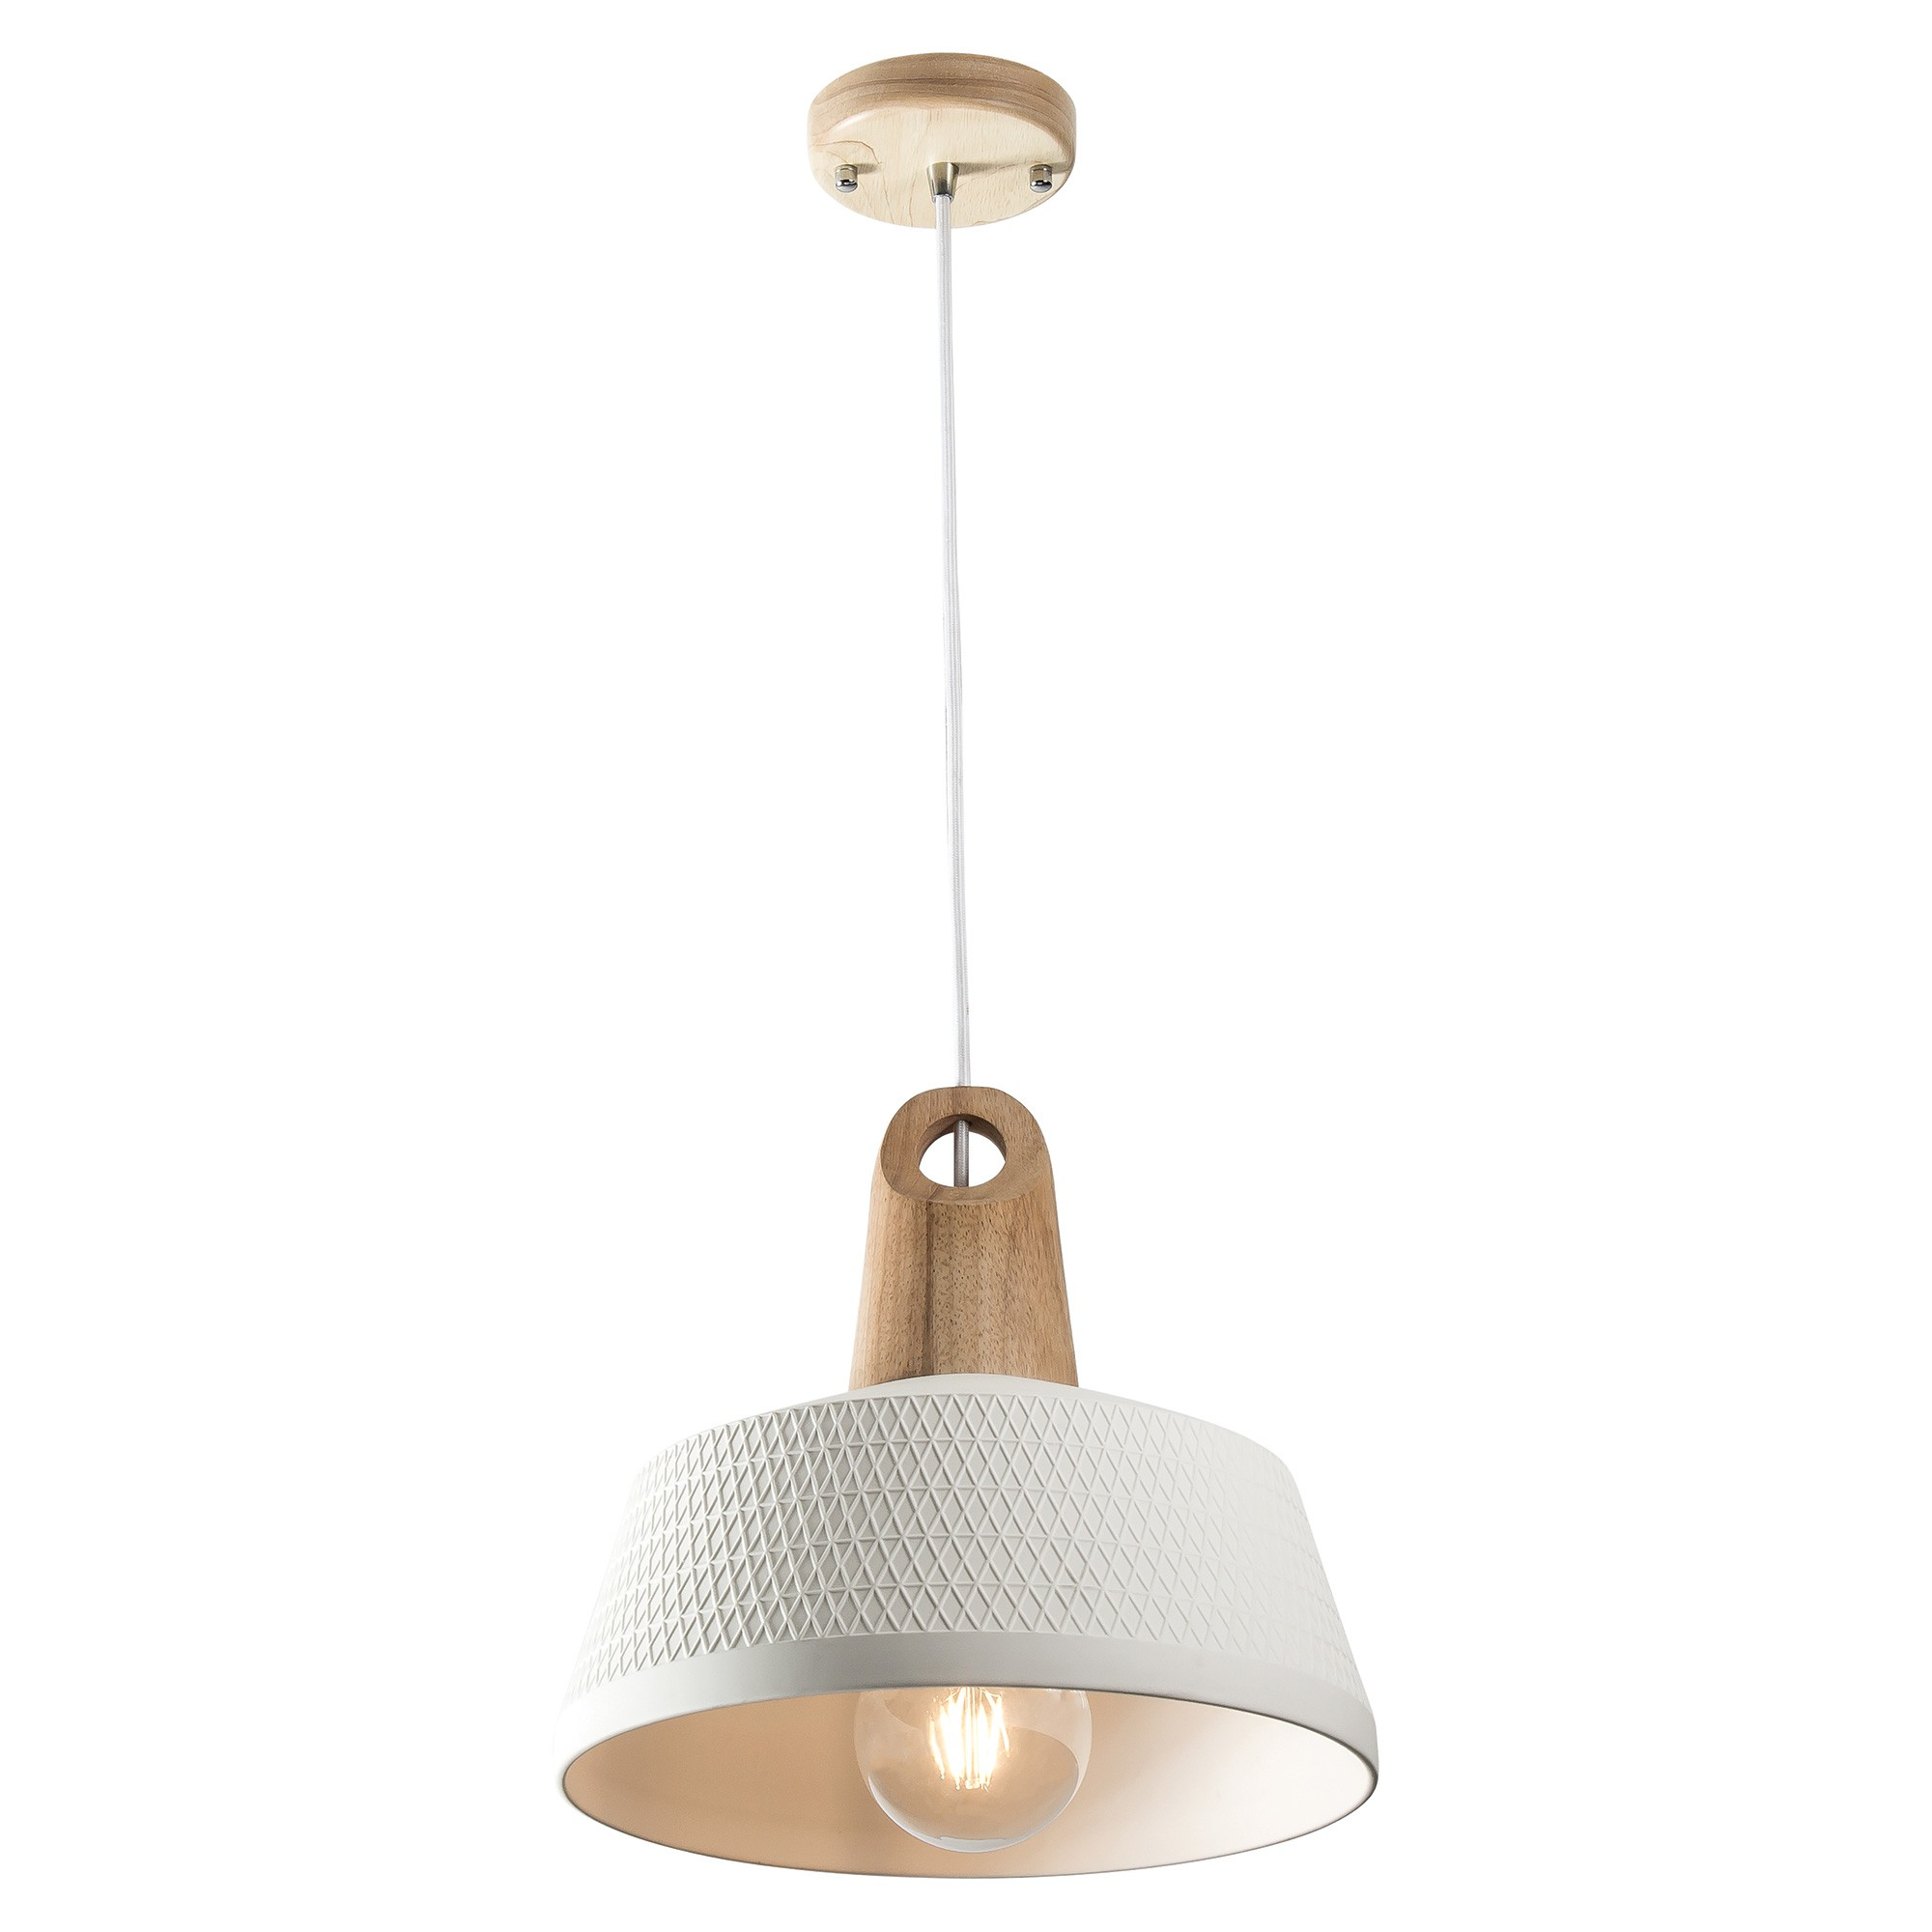 Morrissey Ceramic & Oak Timber Pendant Light, Wide